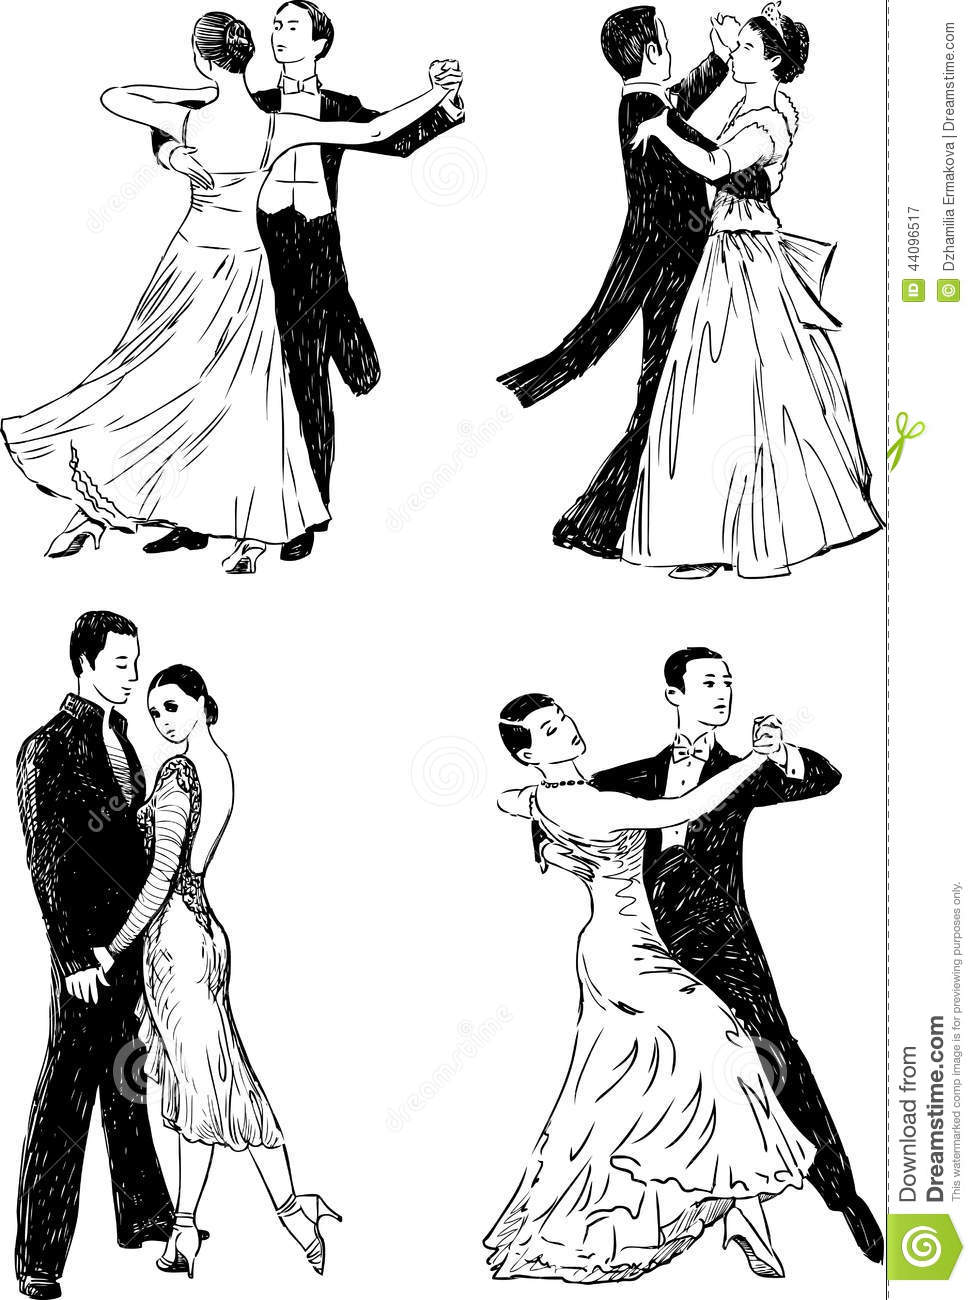 how to waltz bush dance